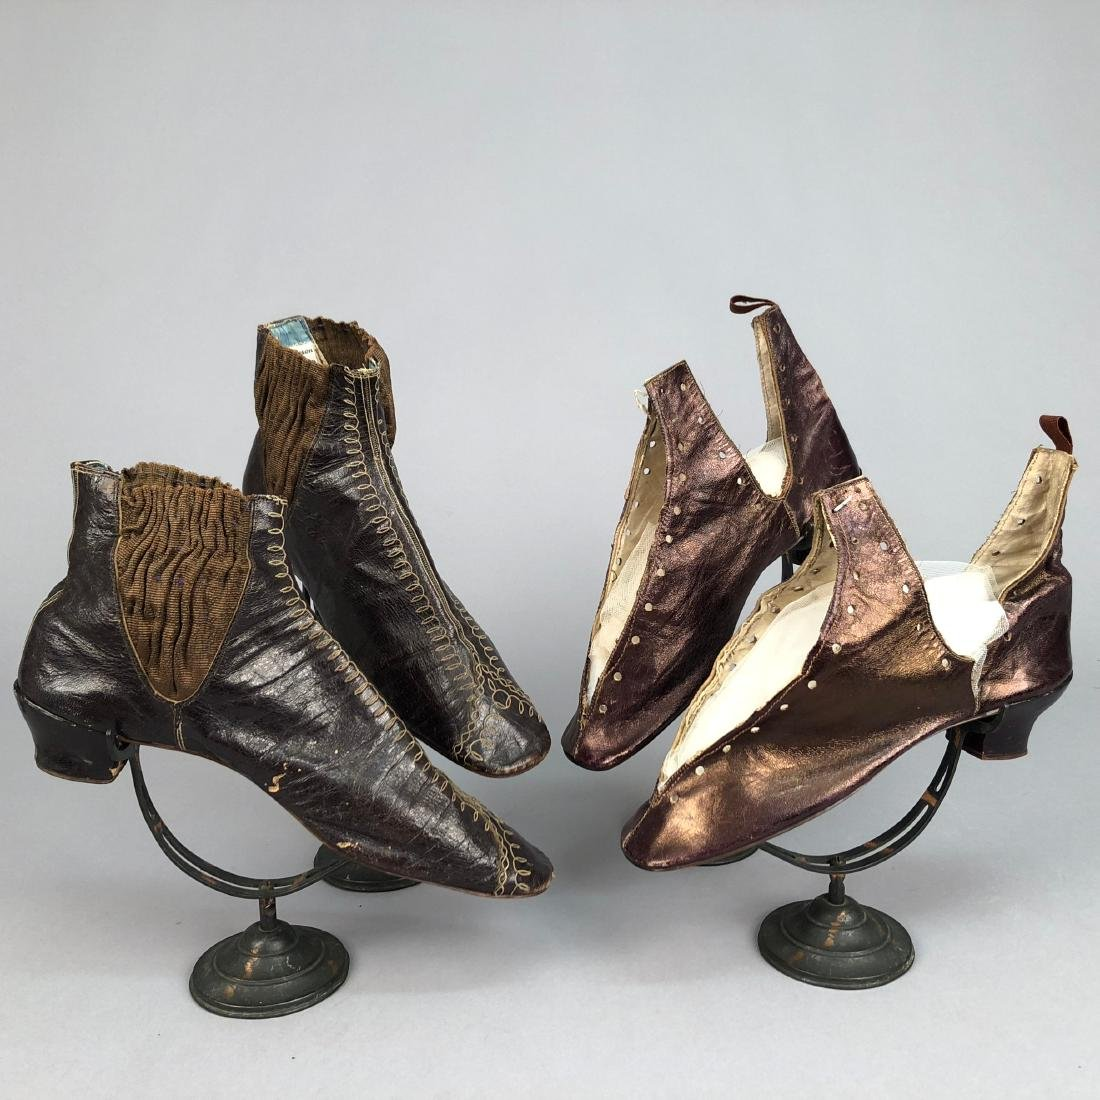 EMBROIDERED BOOTS with ELASTIC INSET, 1850s - 2